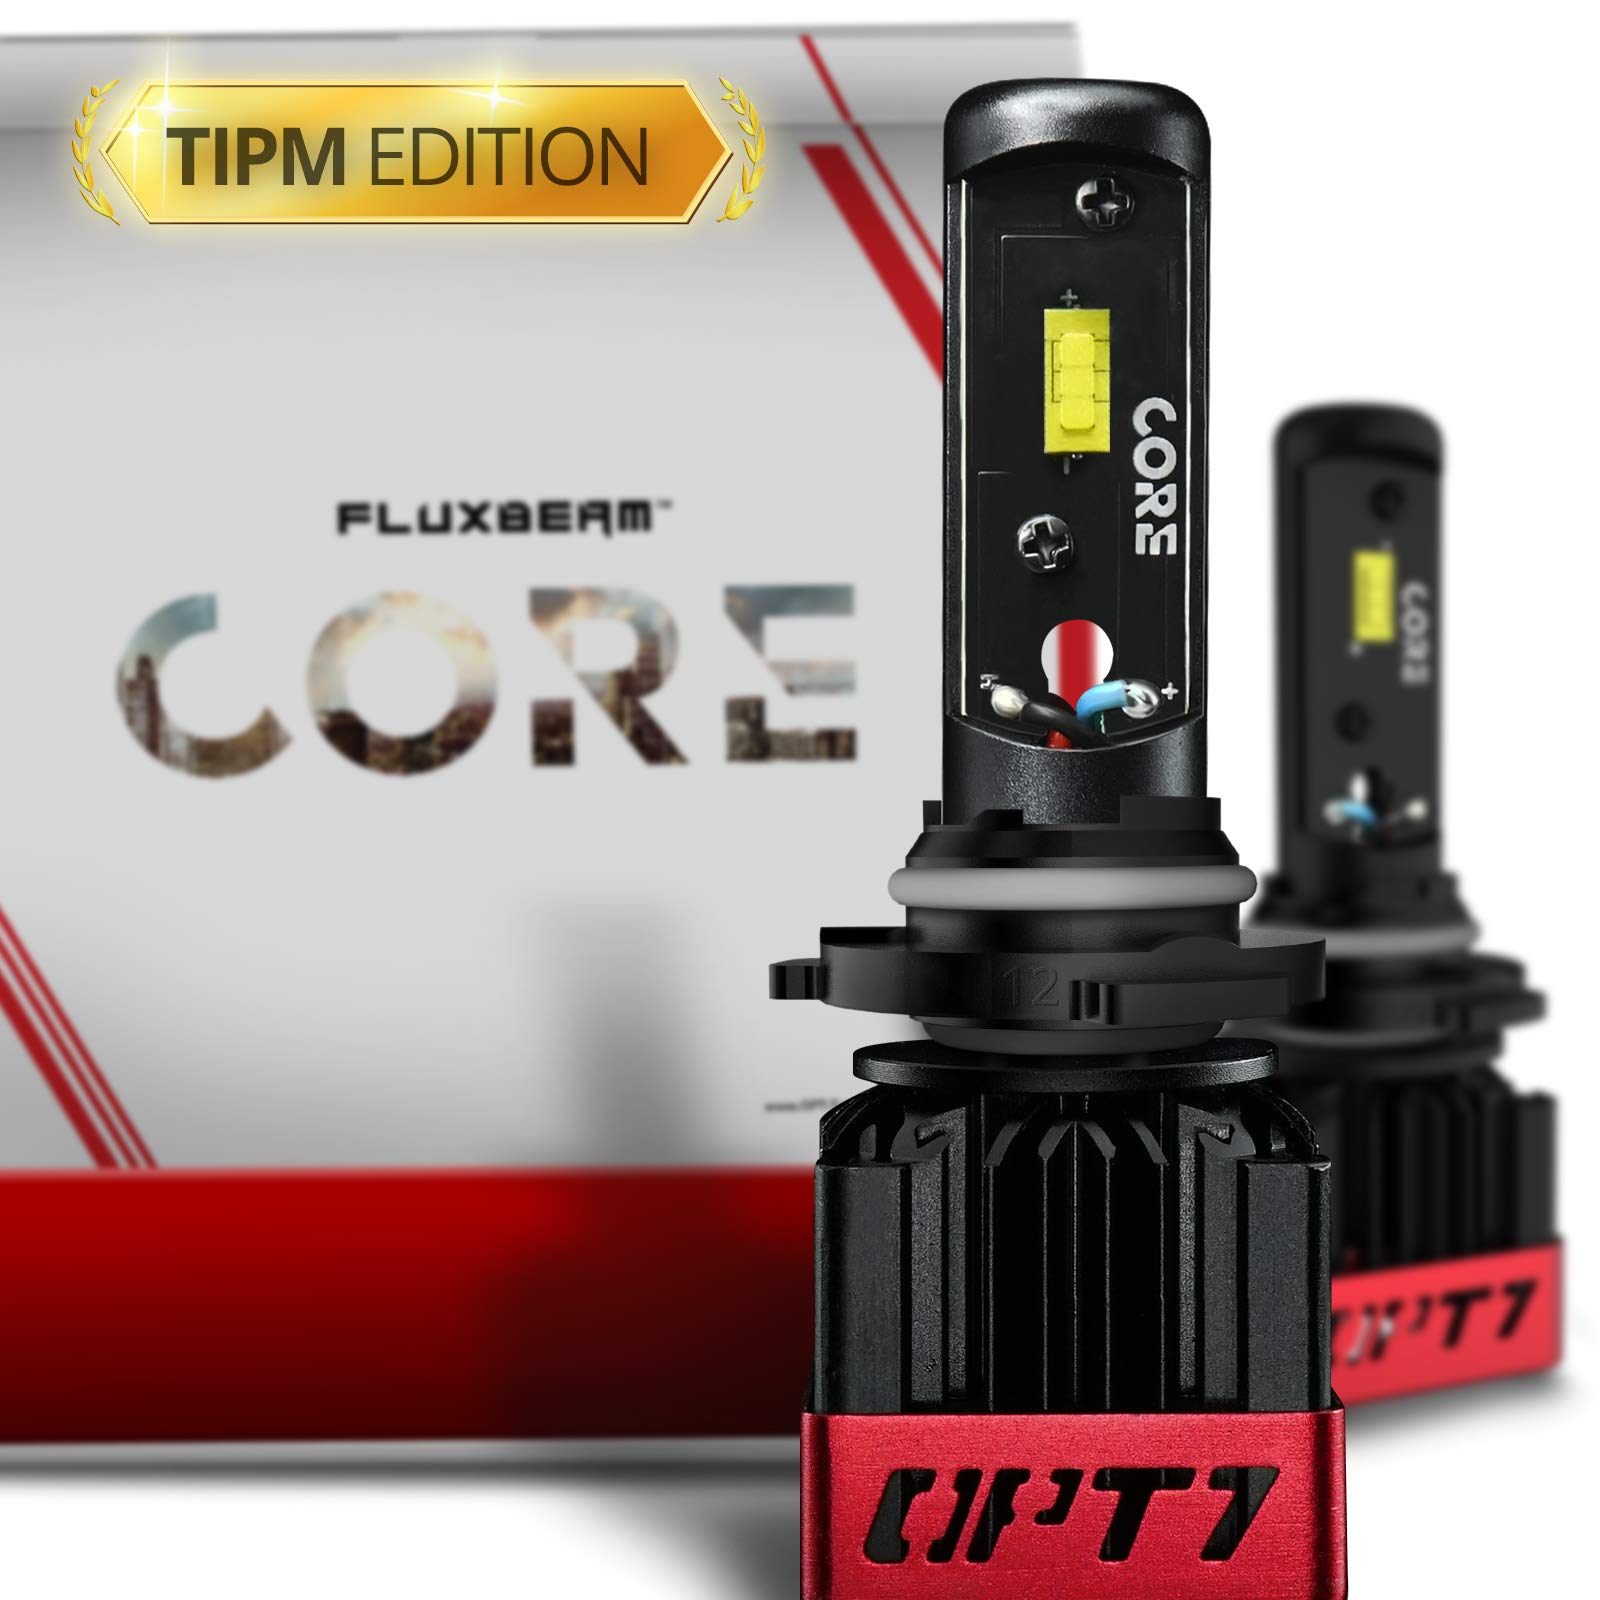 OPT7 Fluxbeam CORE 9012 LED Headlight Bulbs TIPM Resistors Kit with FX-7500 CREE Chip Plug-N-Play Conversion Kit - for Dodge Ram Jeep Chrysler - 6,000LM 6000K Cool White- Built. Not Bought.